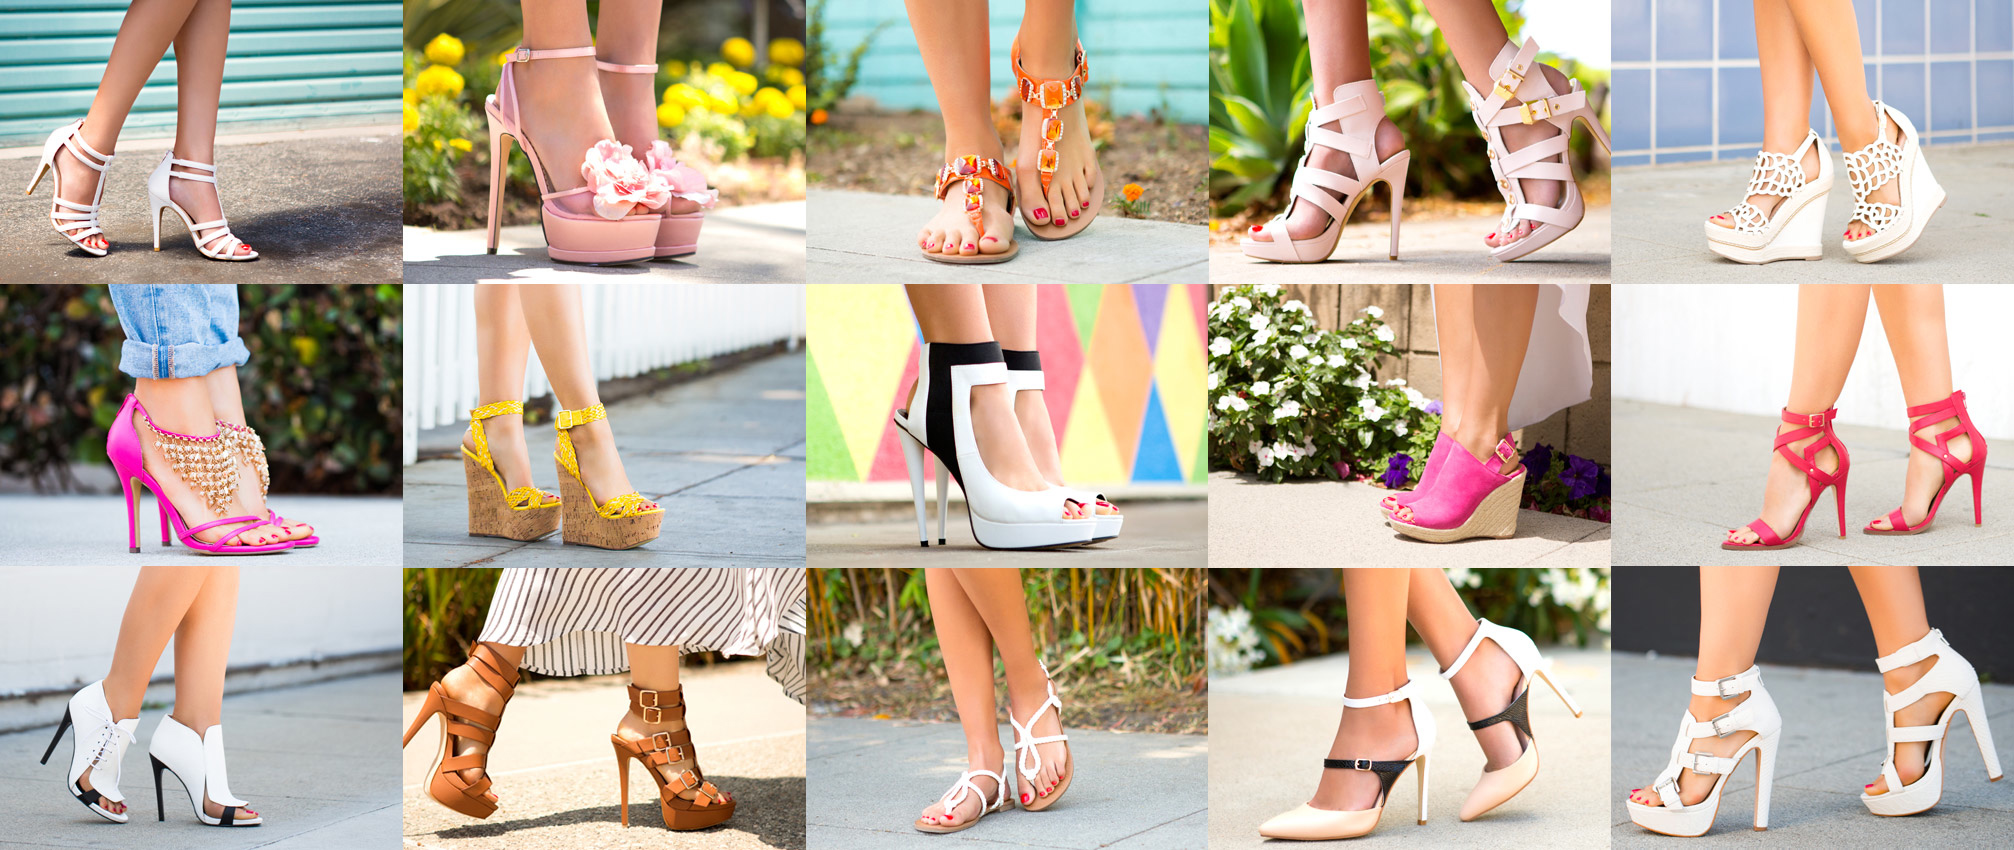 Free Shipping on Your First Order at ShoeDazzle + Get 75% Off!